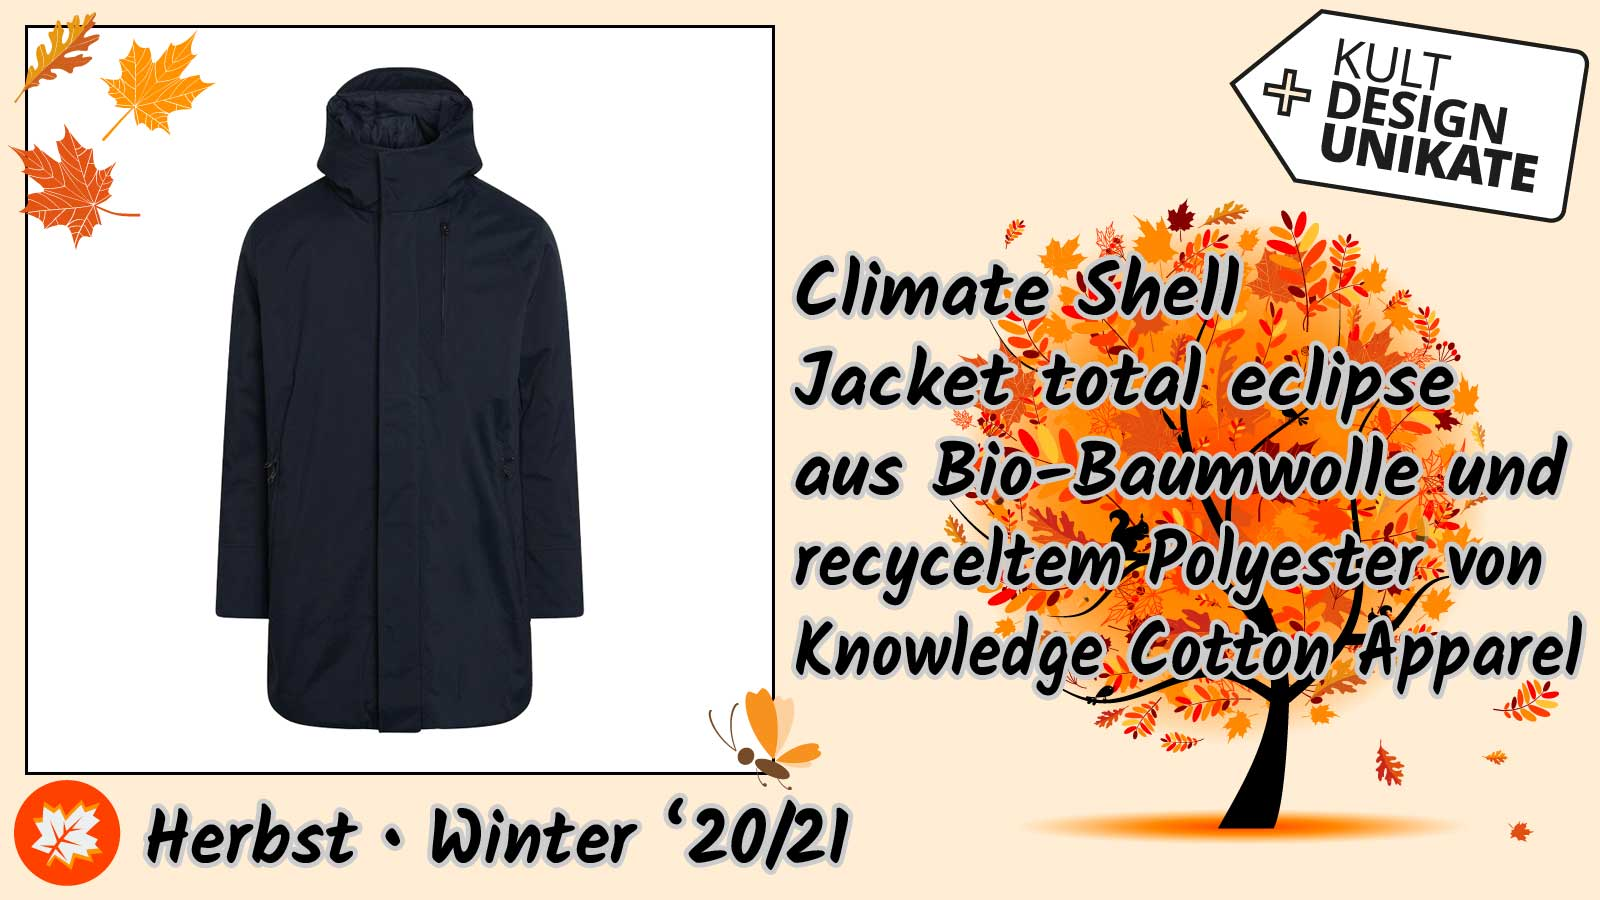 KCA-Climate-Shell-Jacket-total-eclipse